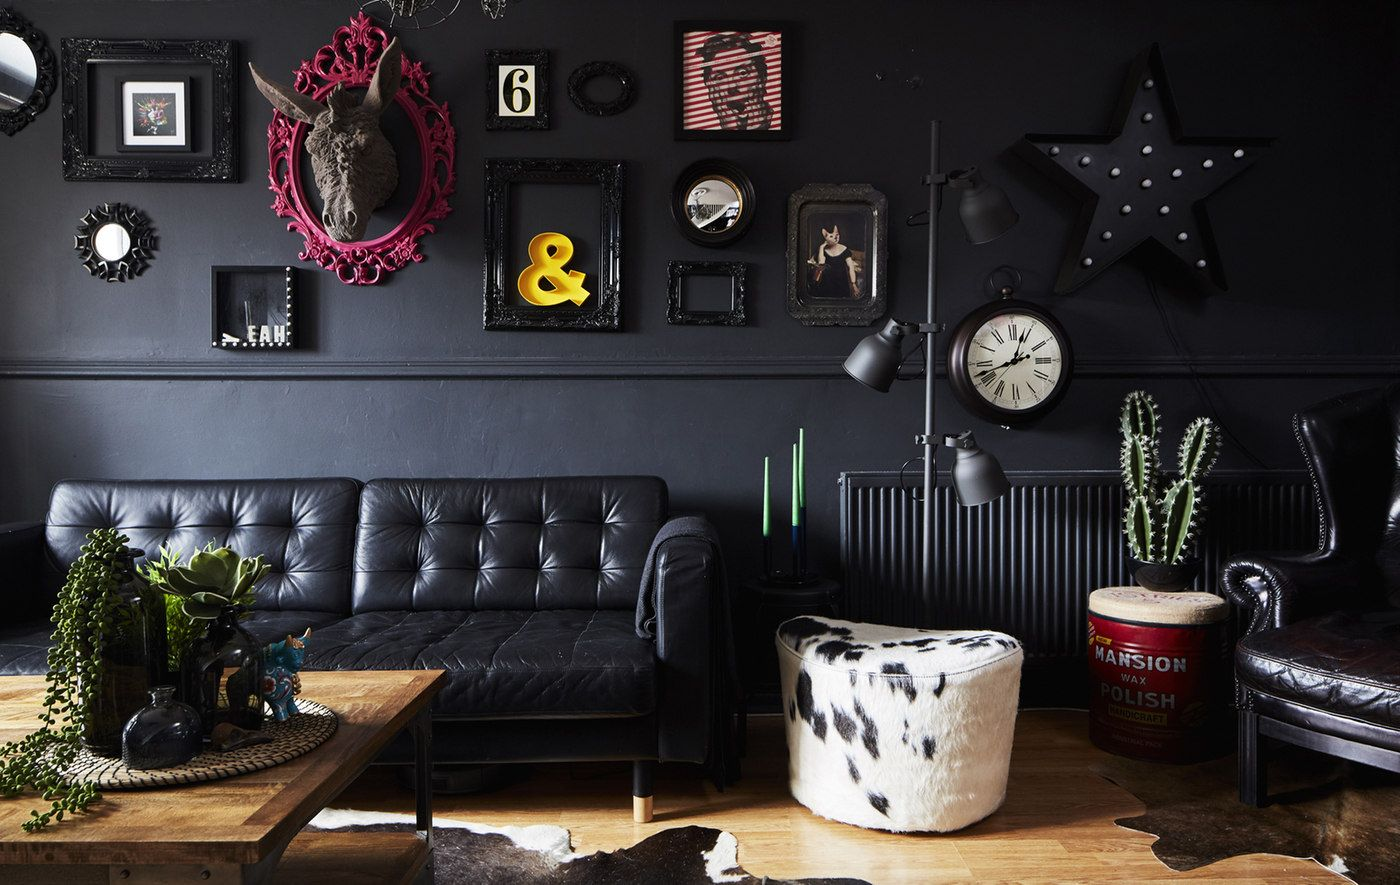 13 Lovely Room Decoration 3 Y8   Decoration   Pinterest   Decoration And  Room